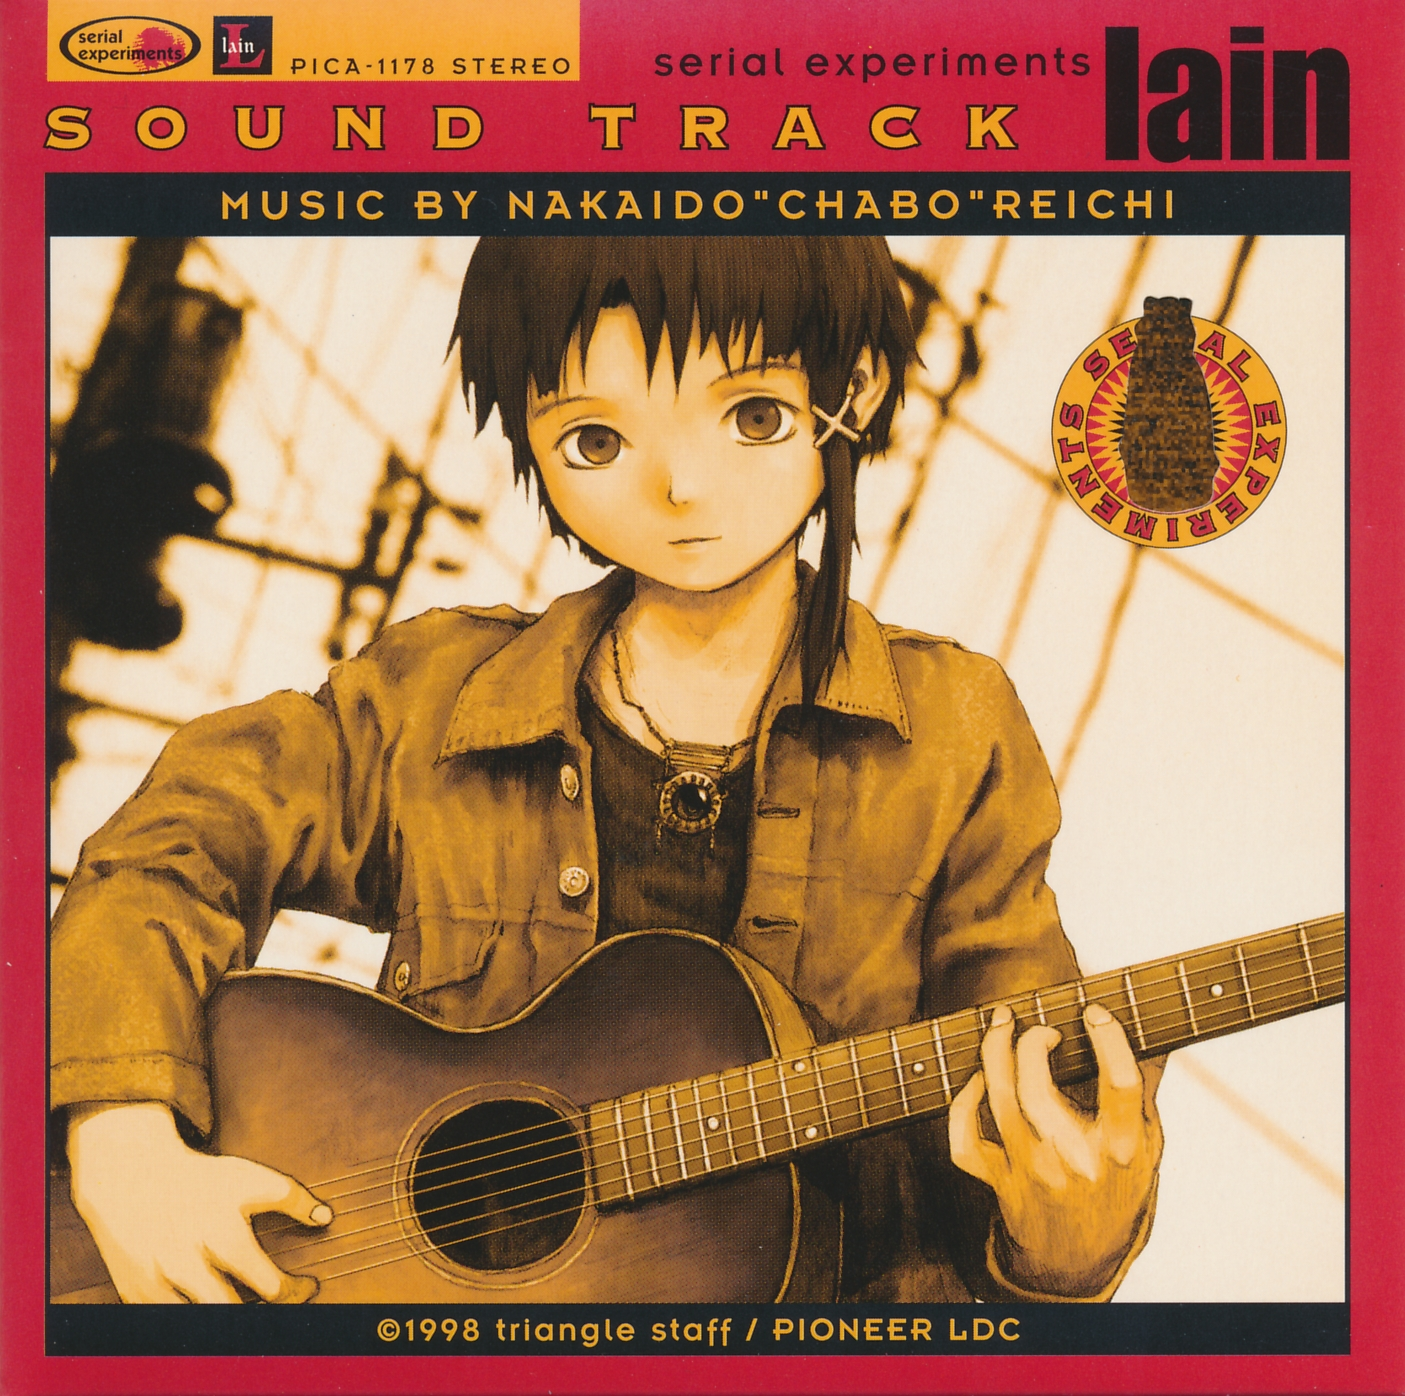 Serial experiments lain ost tracklist rodeo